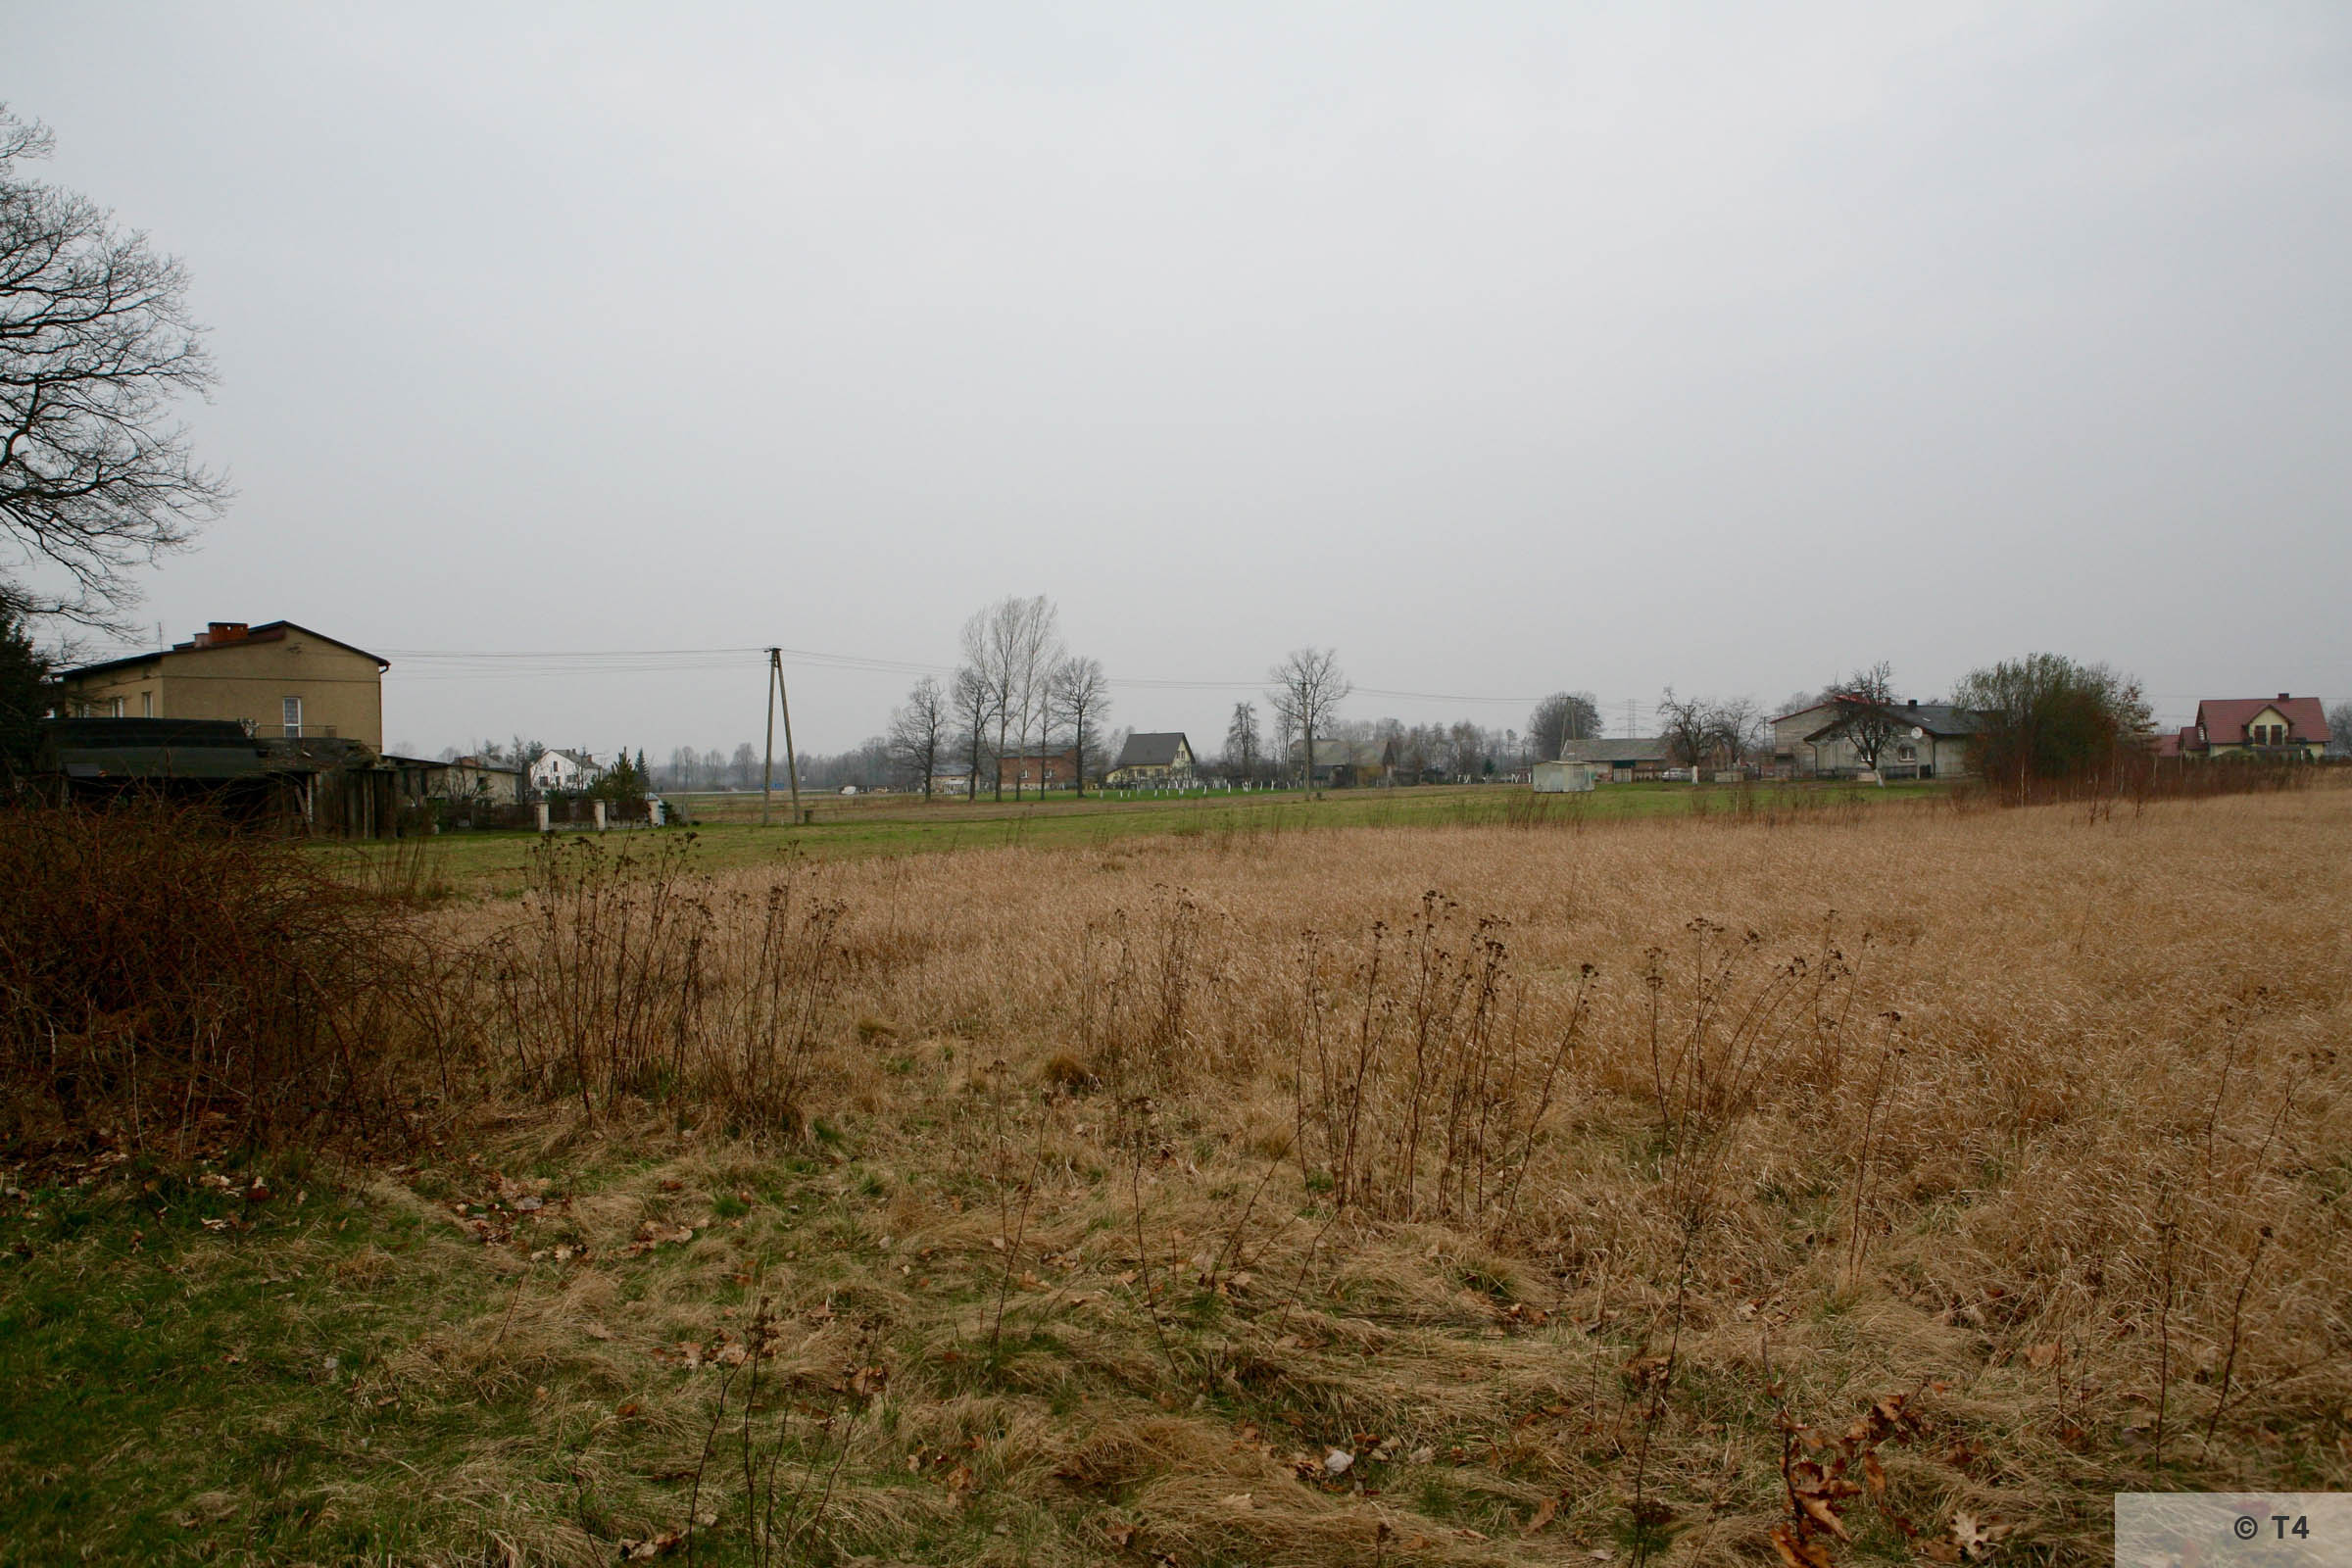 View of Babice village and farm land. 2007 T4 3684